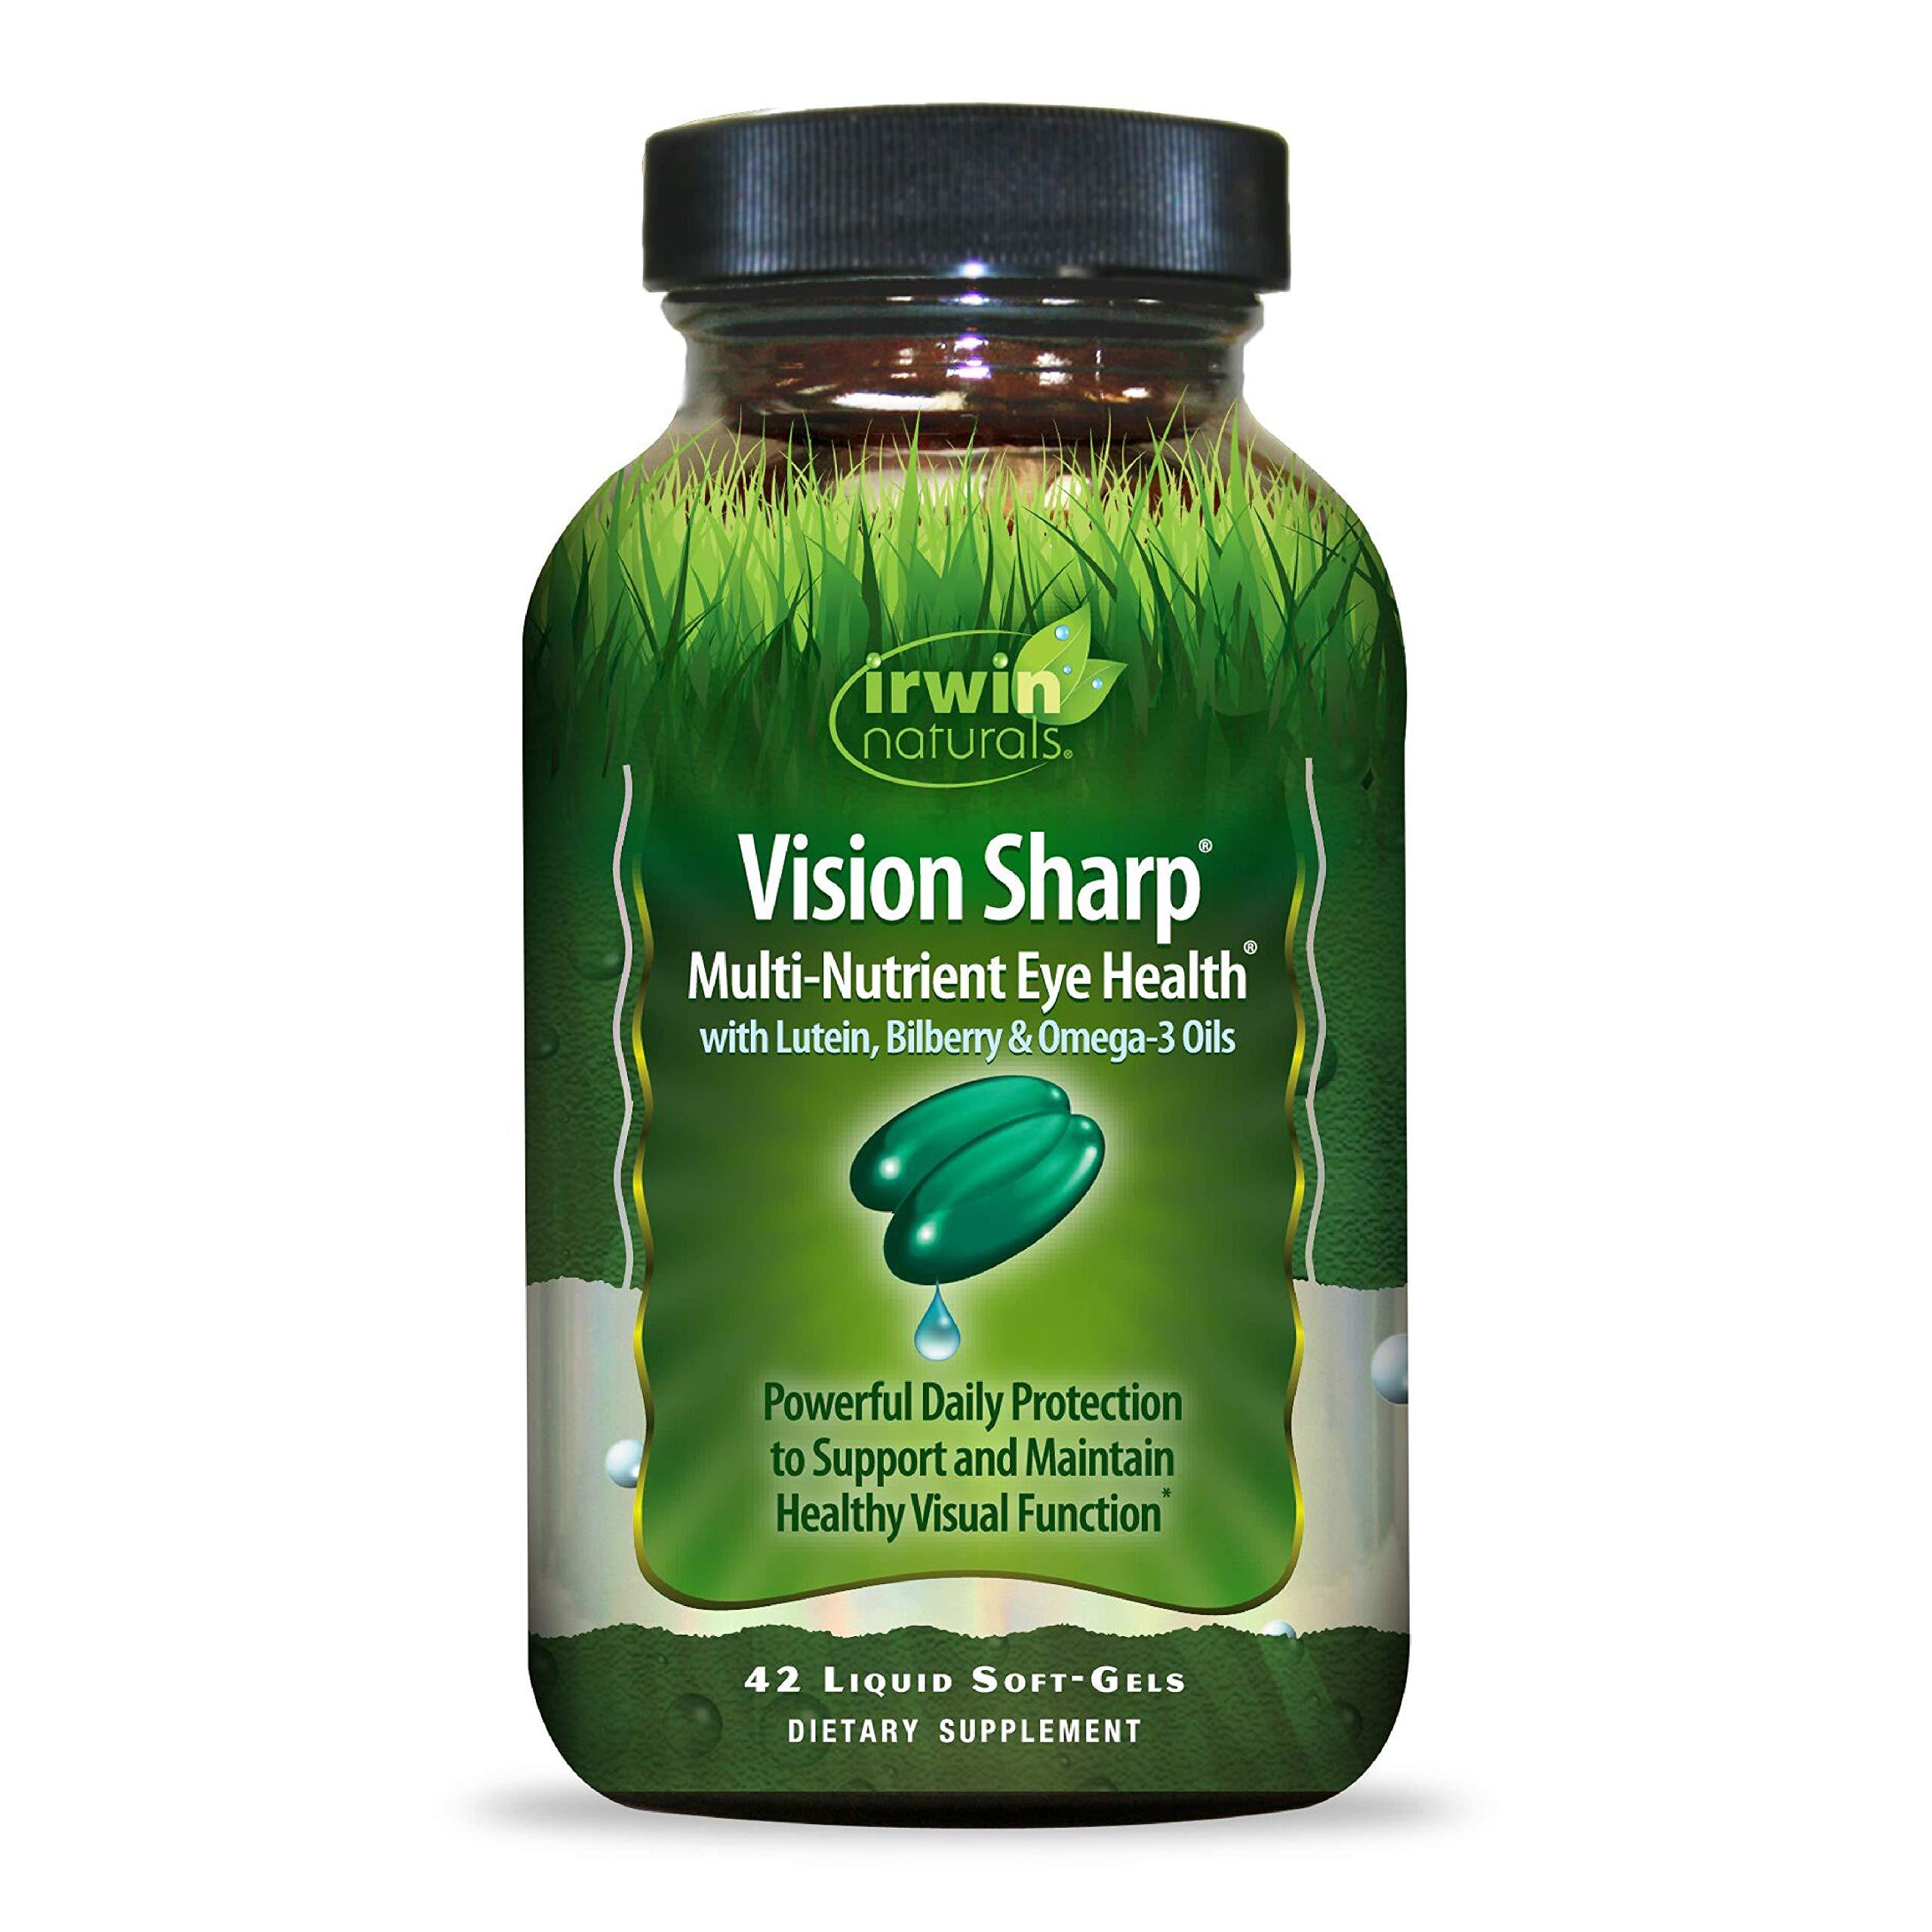 Irwin Naturals Vision Sharp Multi-Nutrient Eye Health with Lutein, Bilberry & Omega-3s - 42 Liquid Softgels by Irwin Naturals